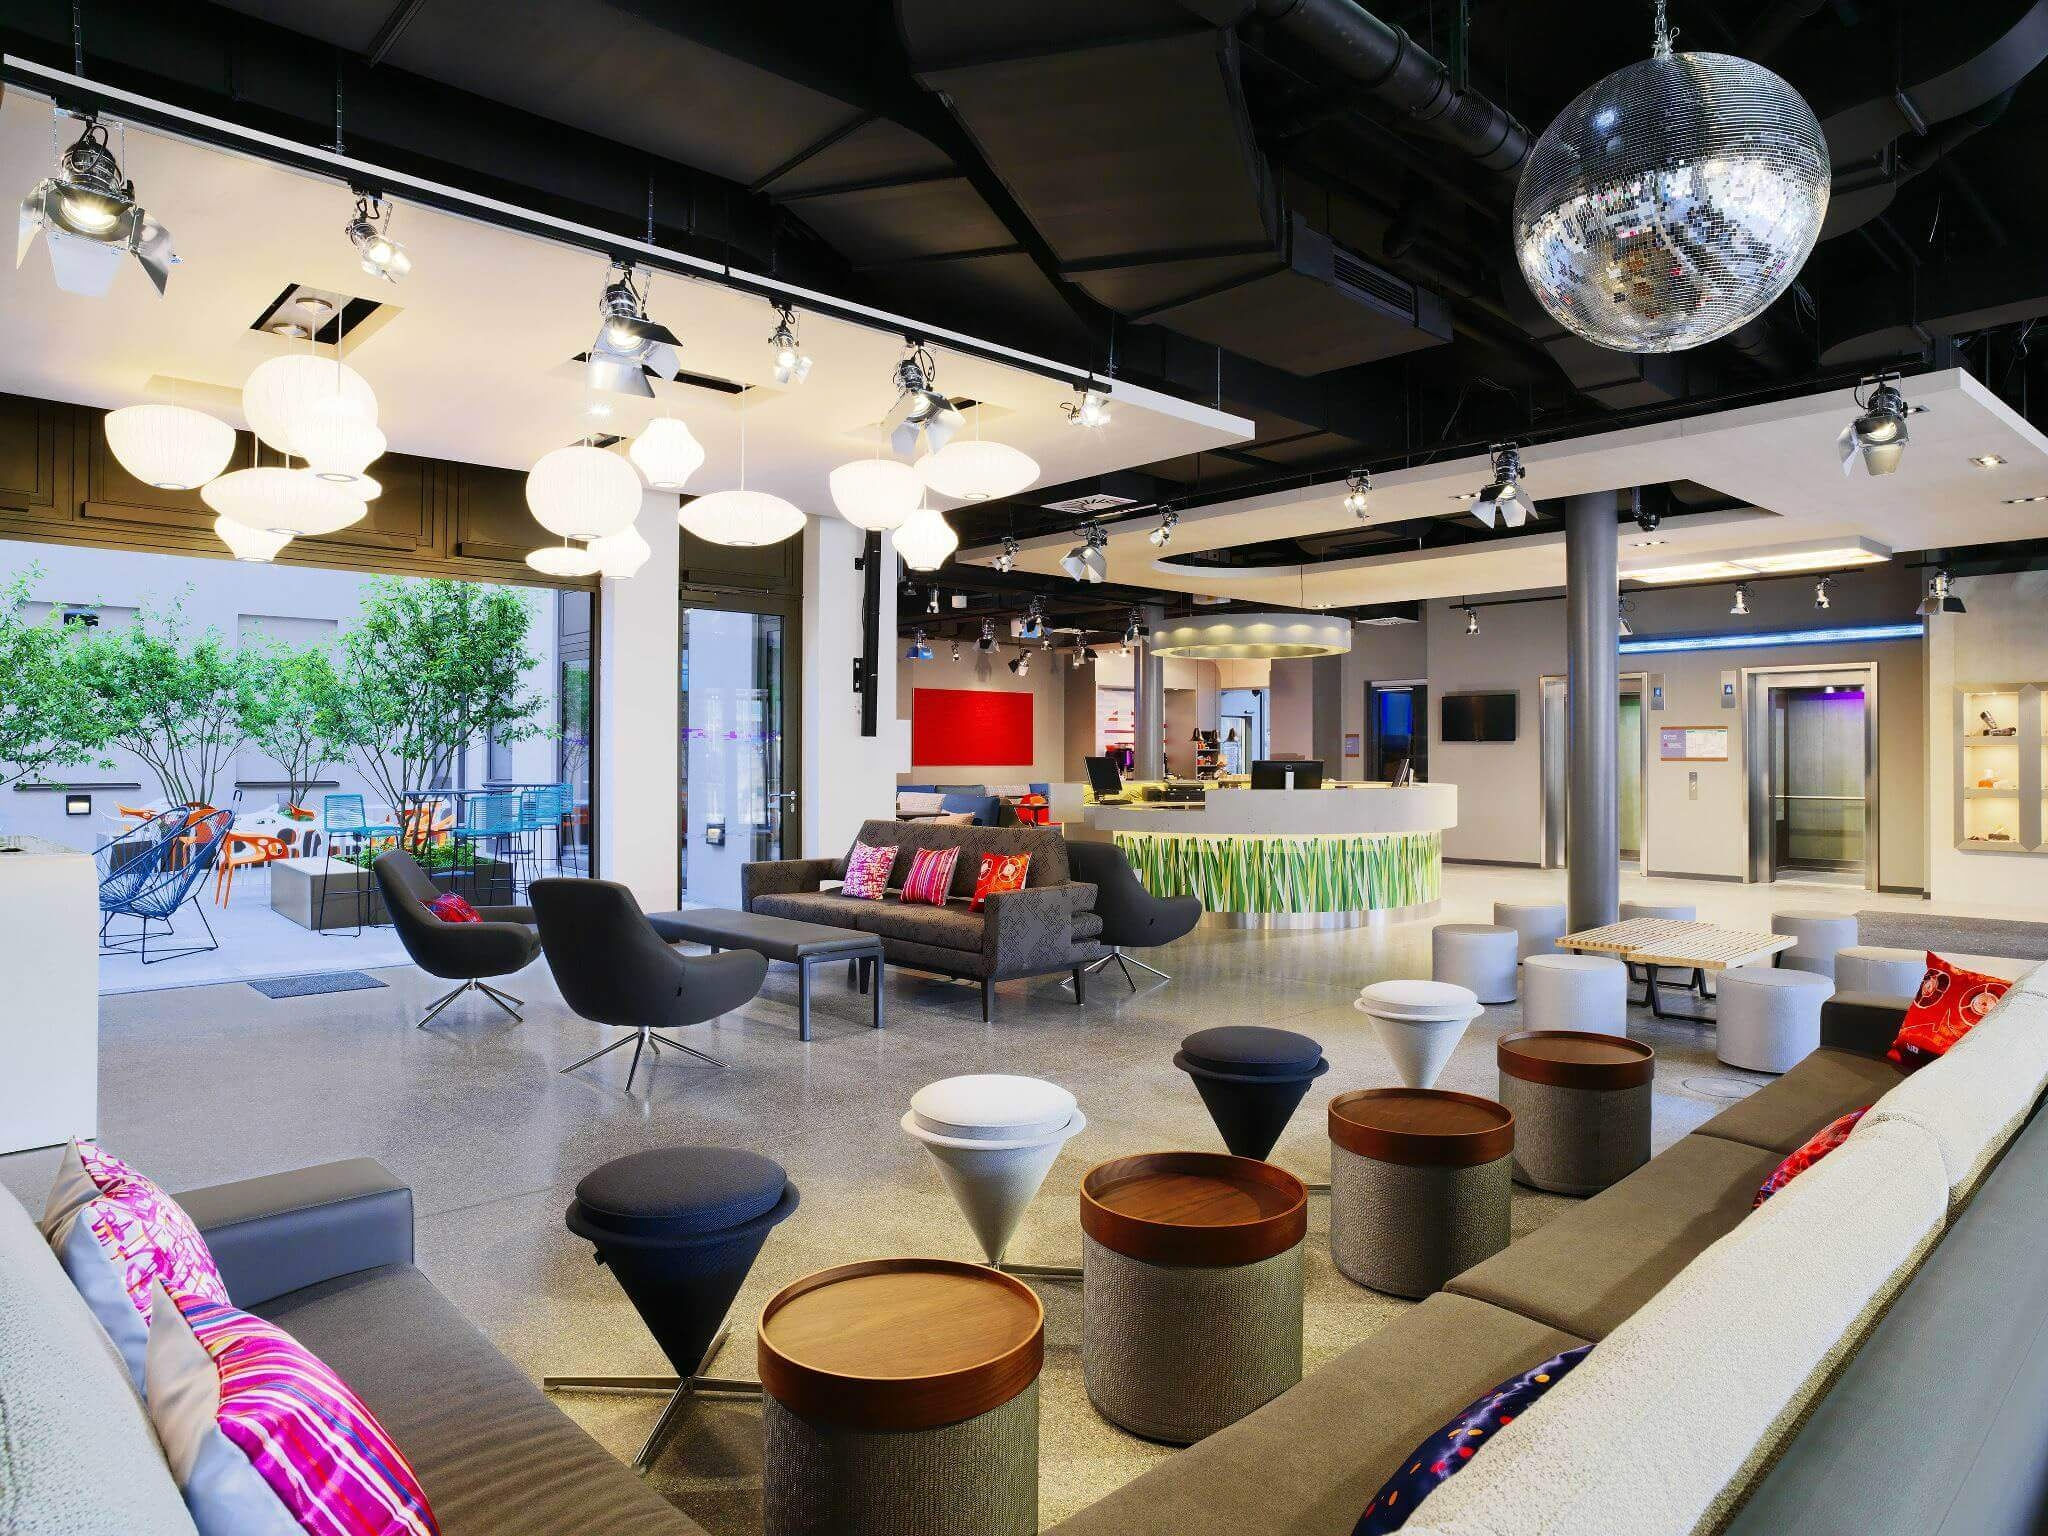 Have a drink in our lounge - Aloft hotel Munich city centre